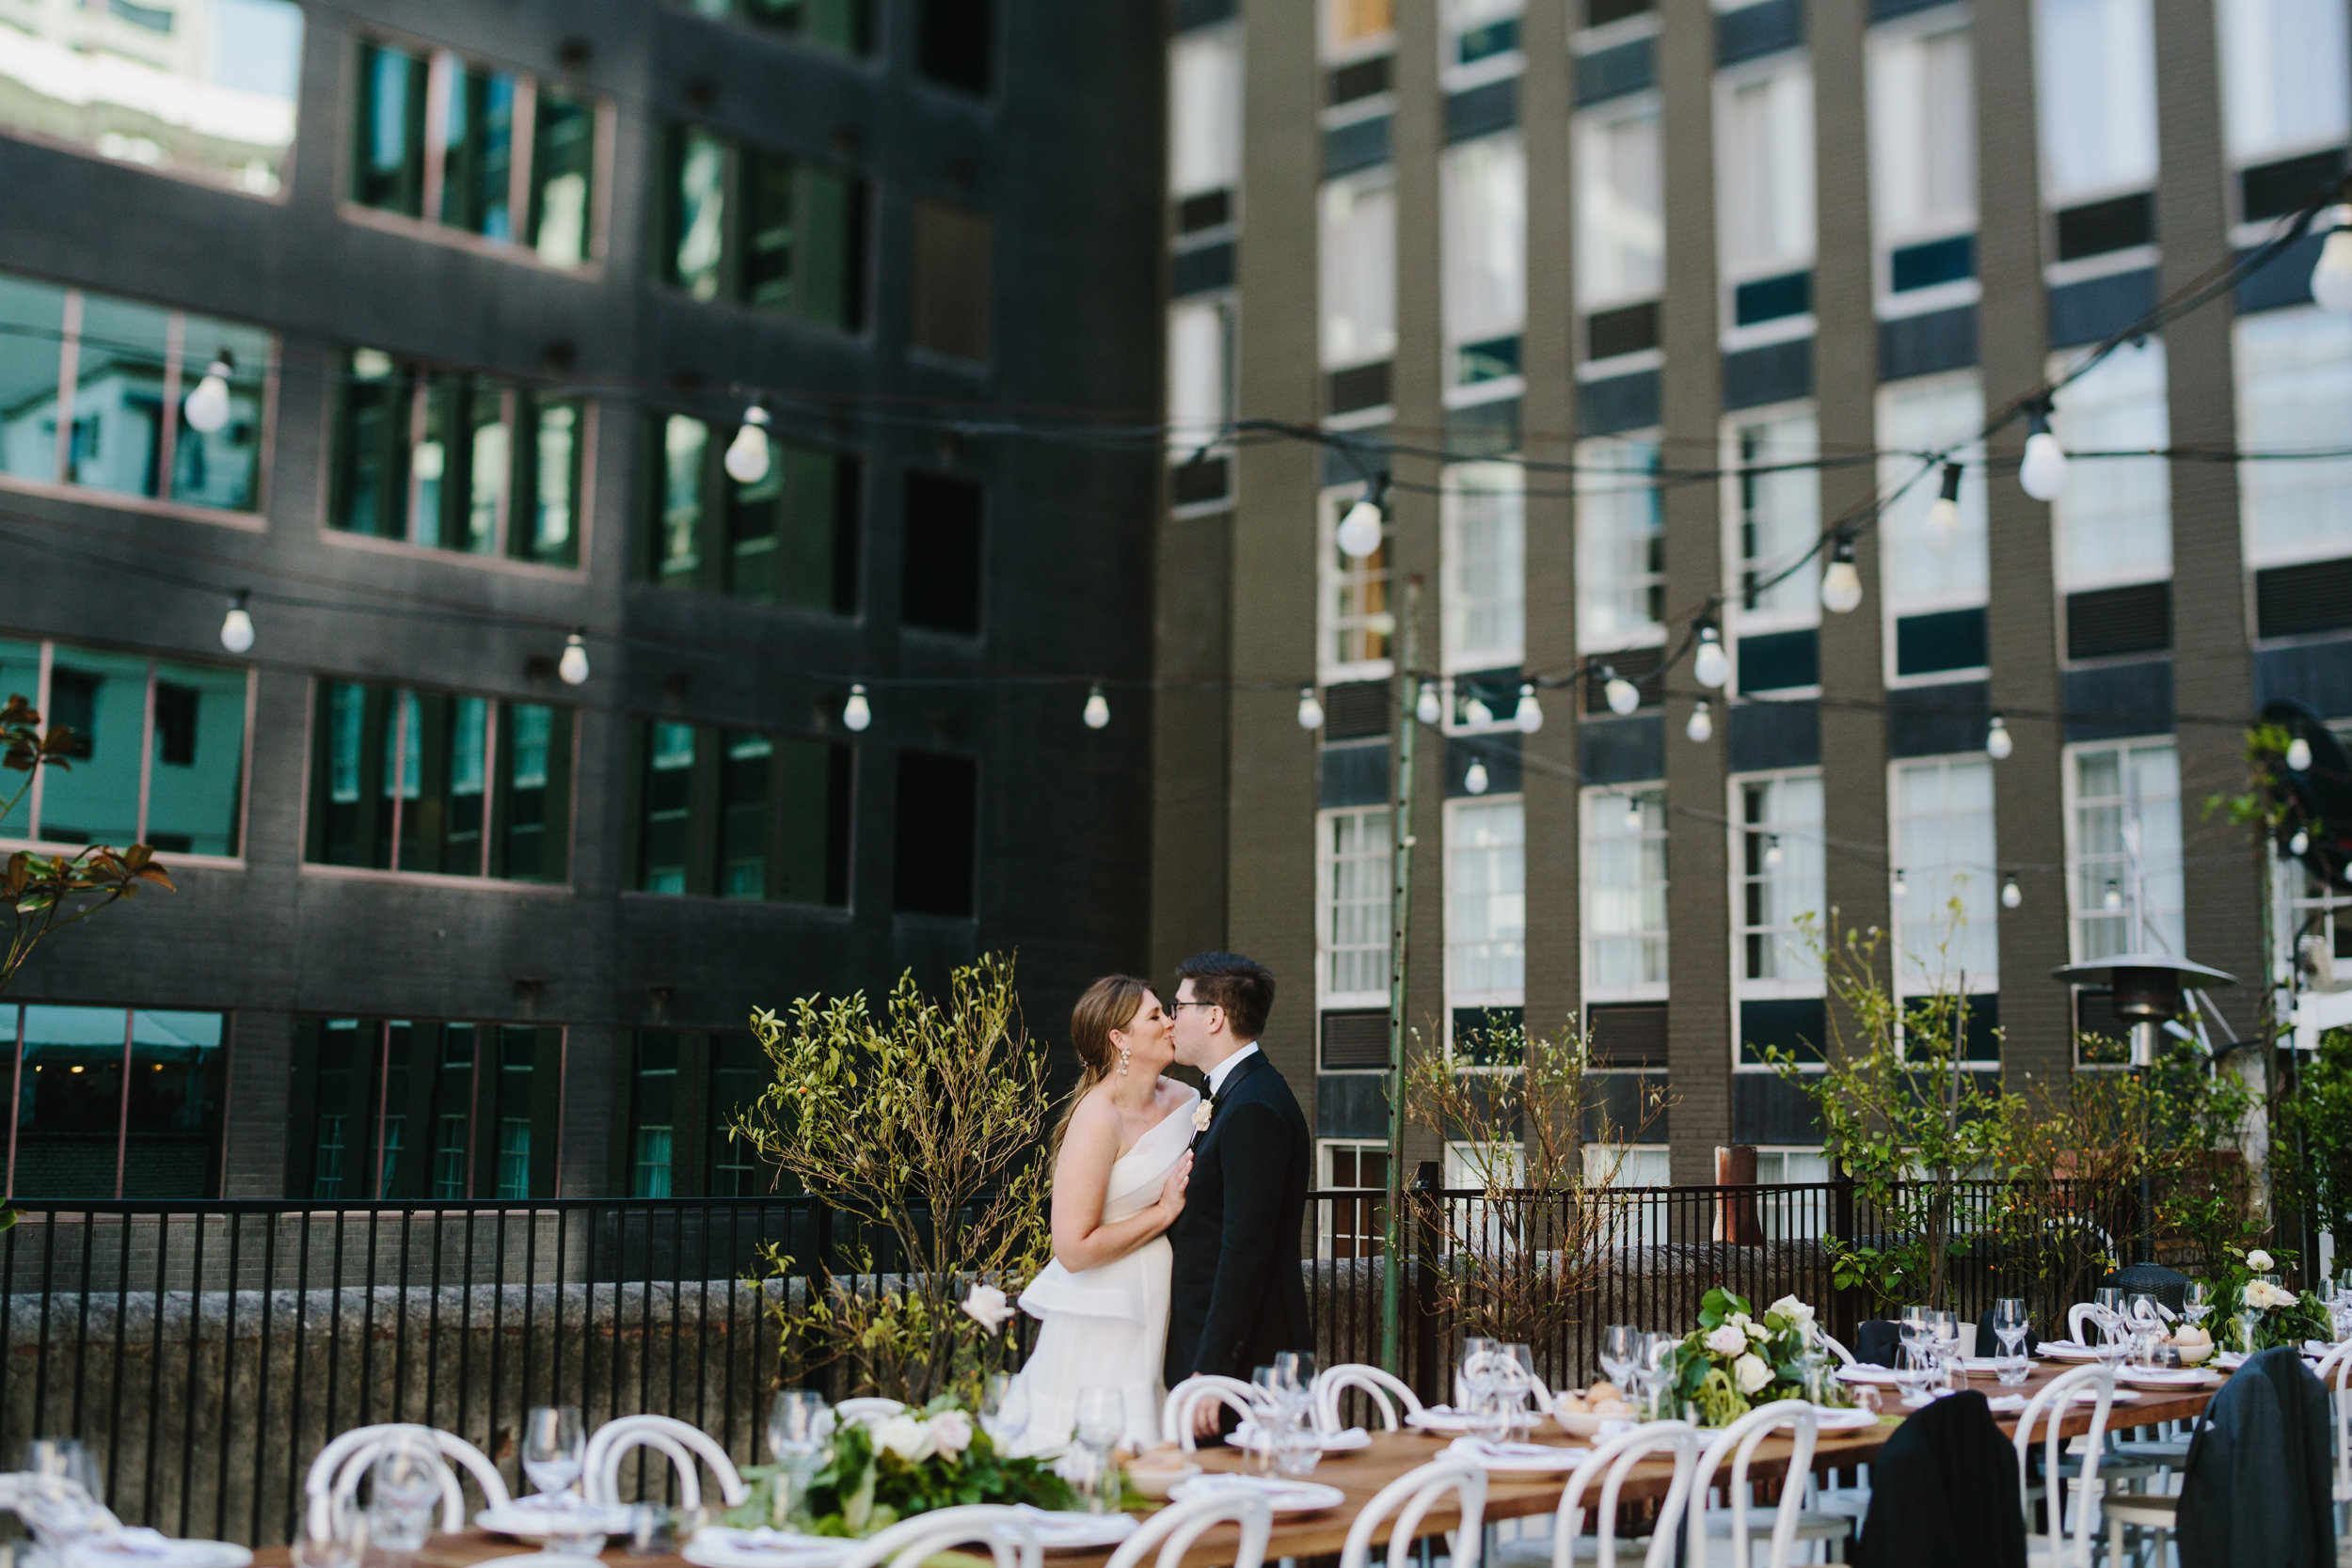 Melbourne_City_Rooftop_Wedding_Tyson_Brigette084.JPG